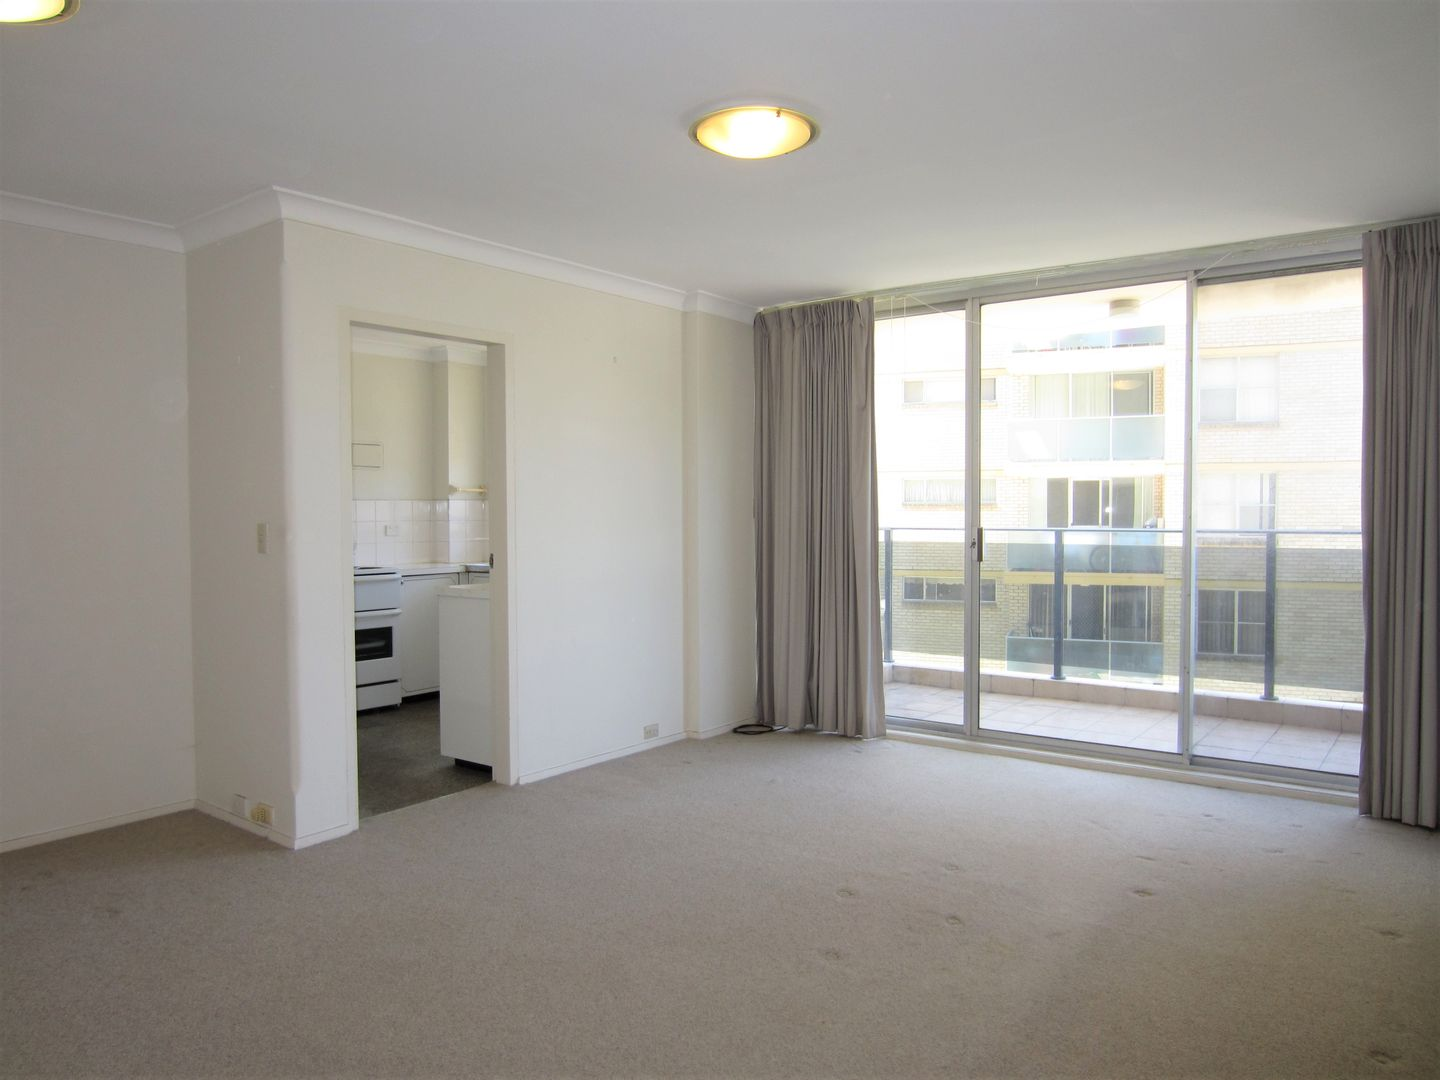 13/35 Orchard Road, Chatswood NSW 2067, Image 1